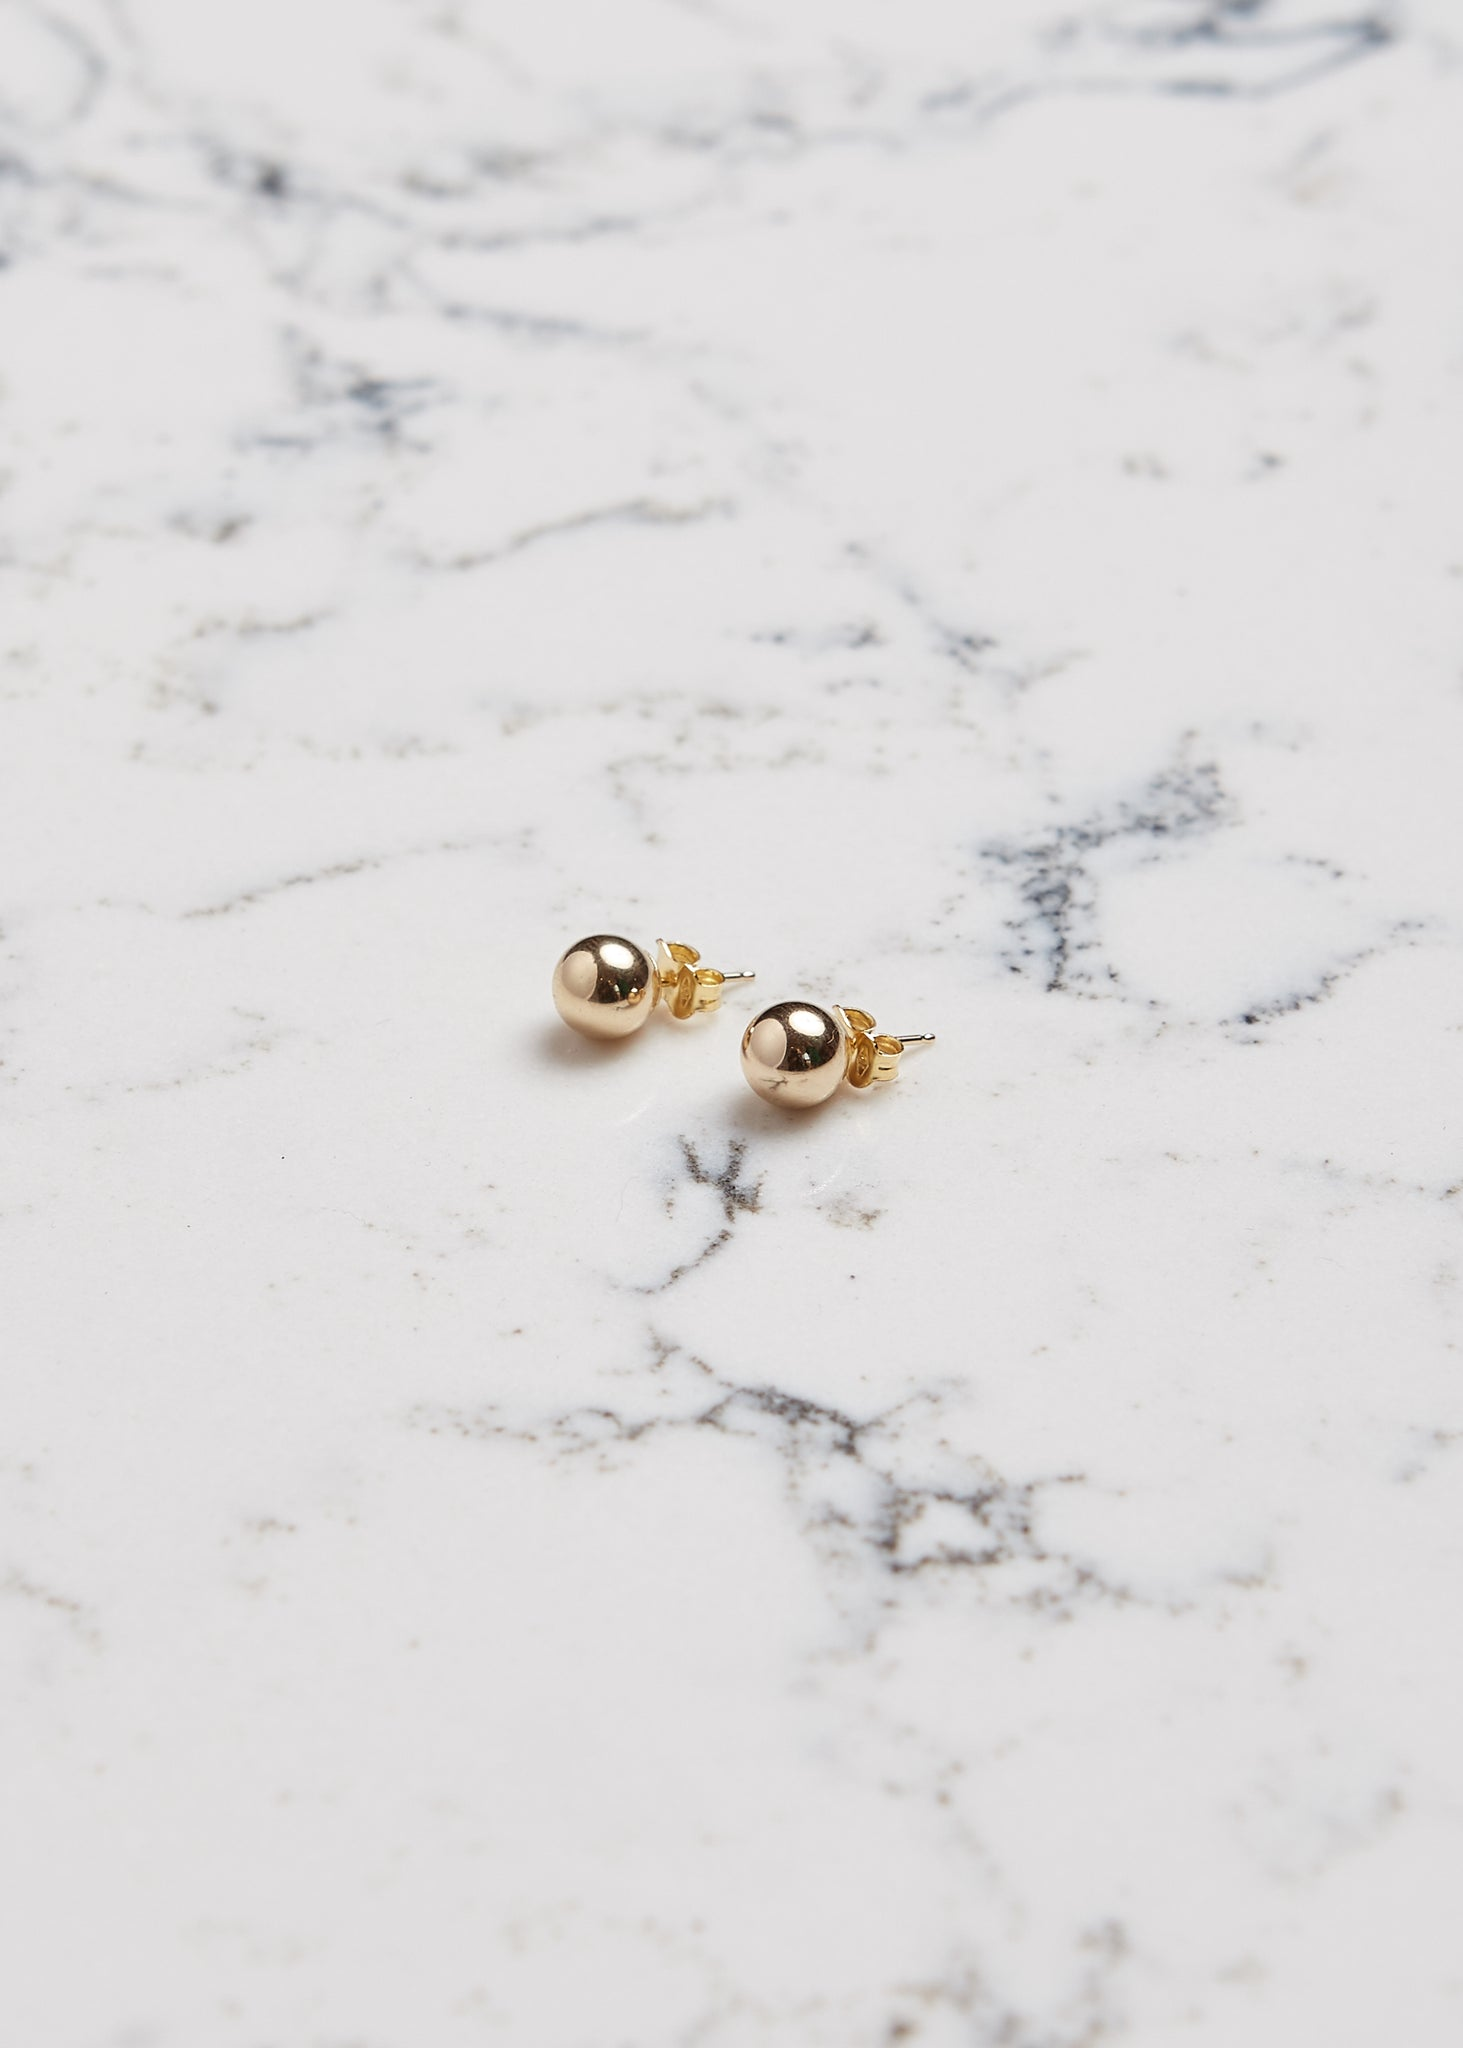 Ball Earrings | Boucle d'oreilles boule